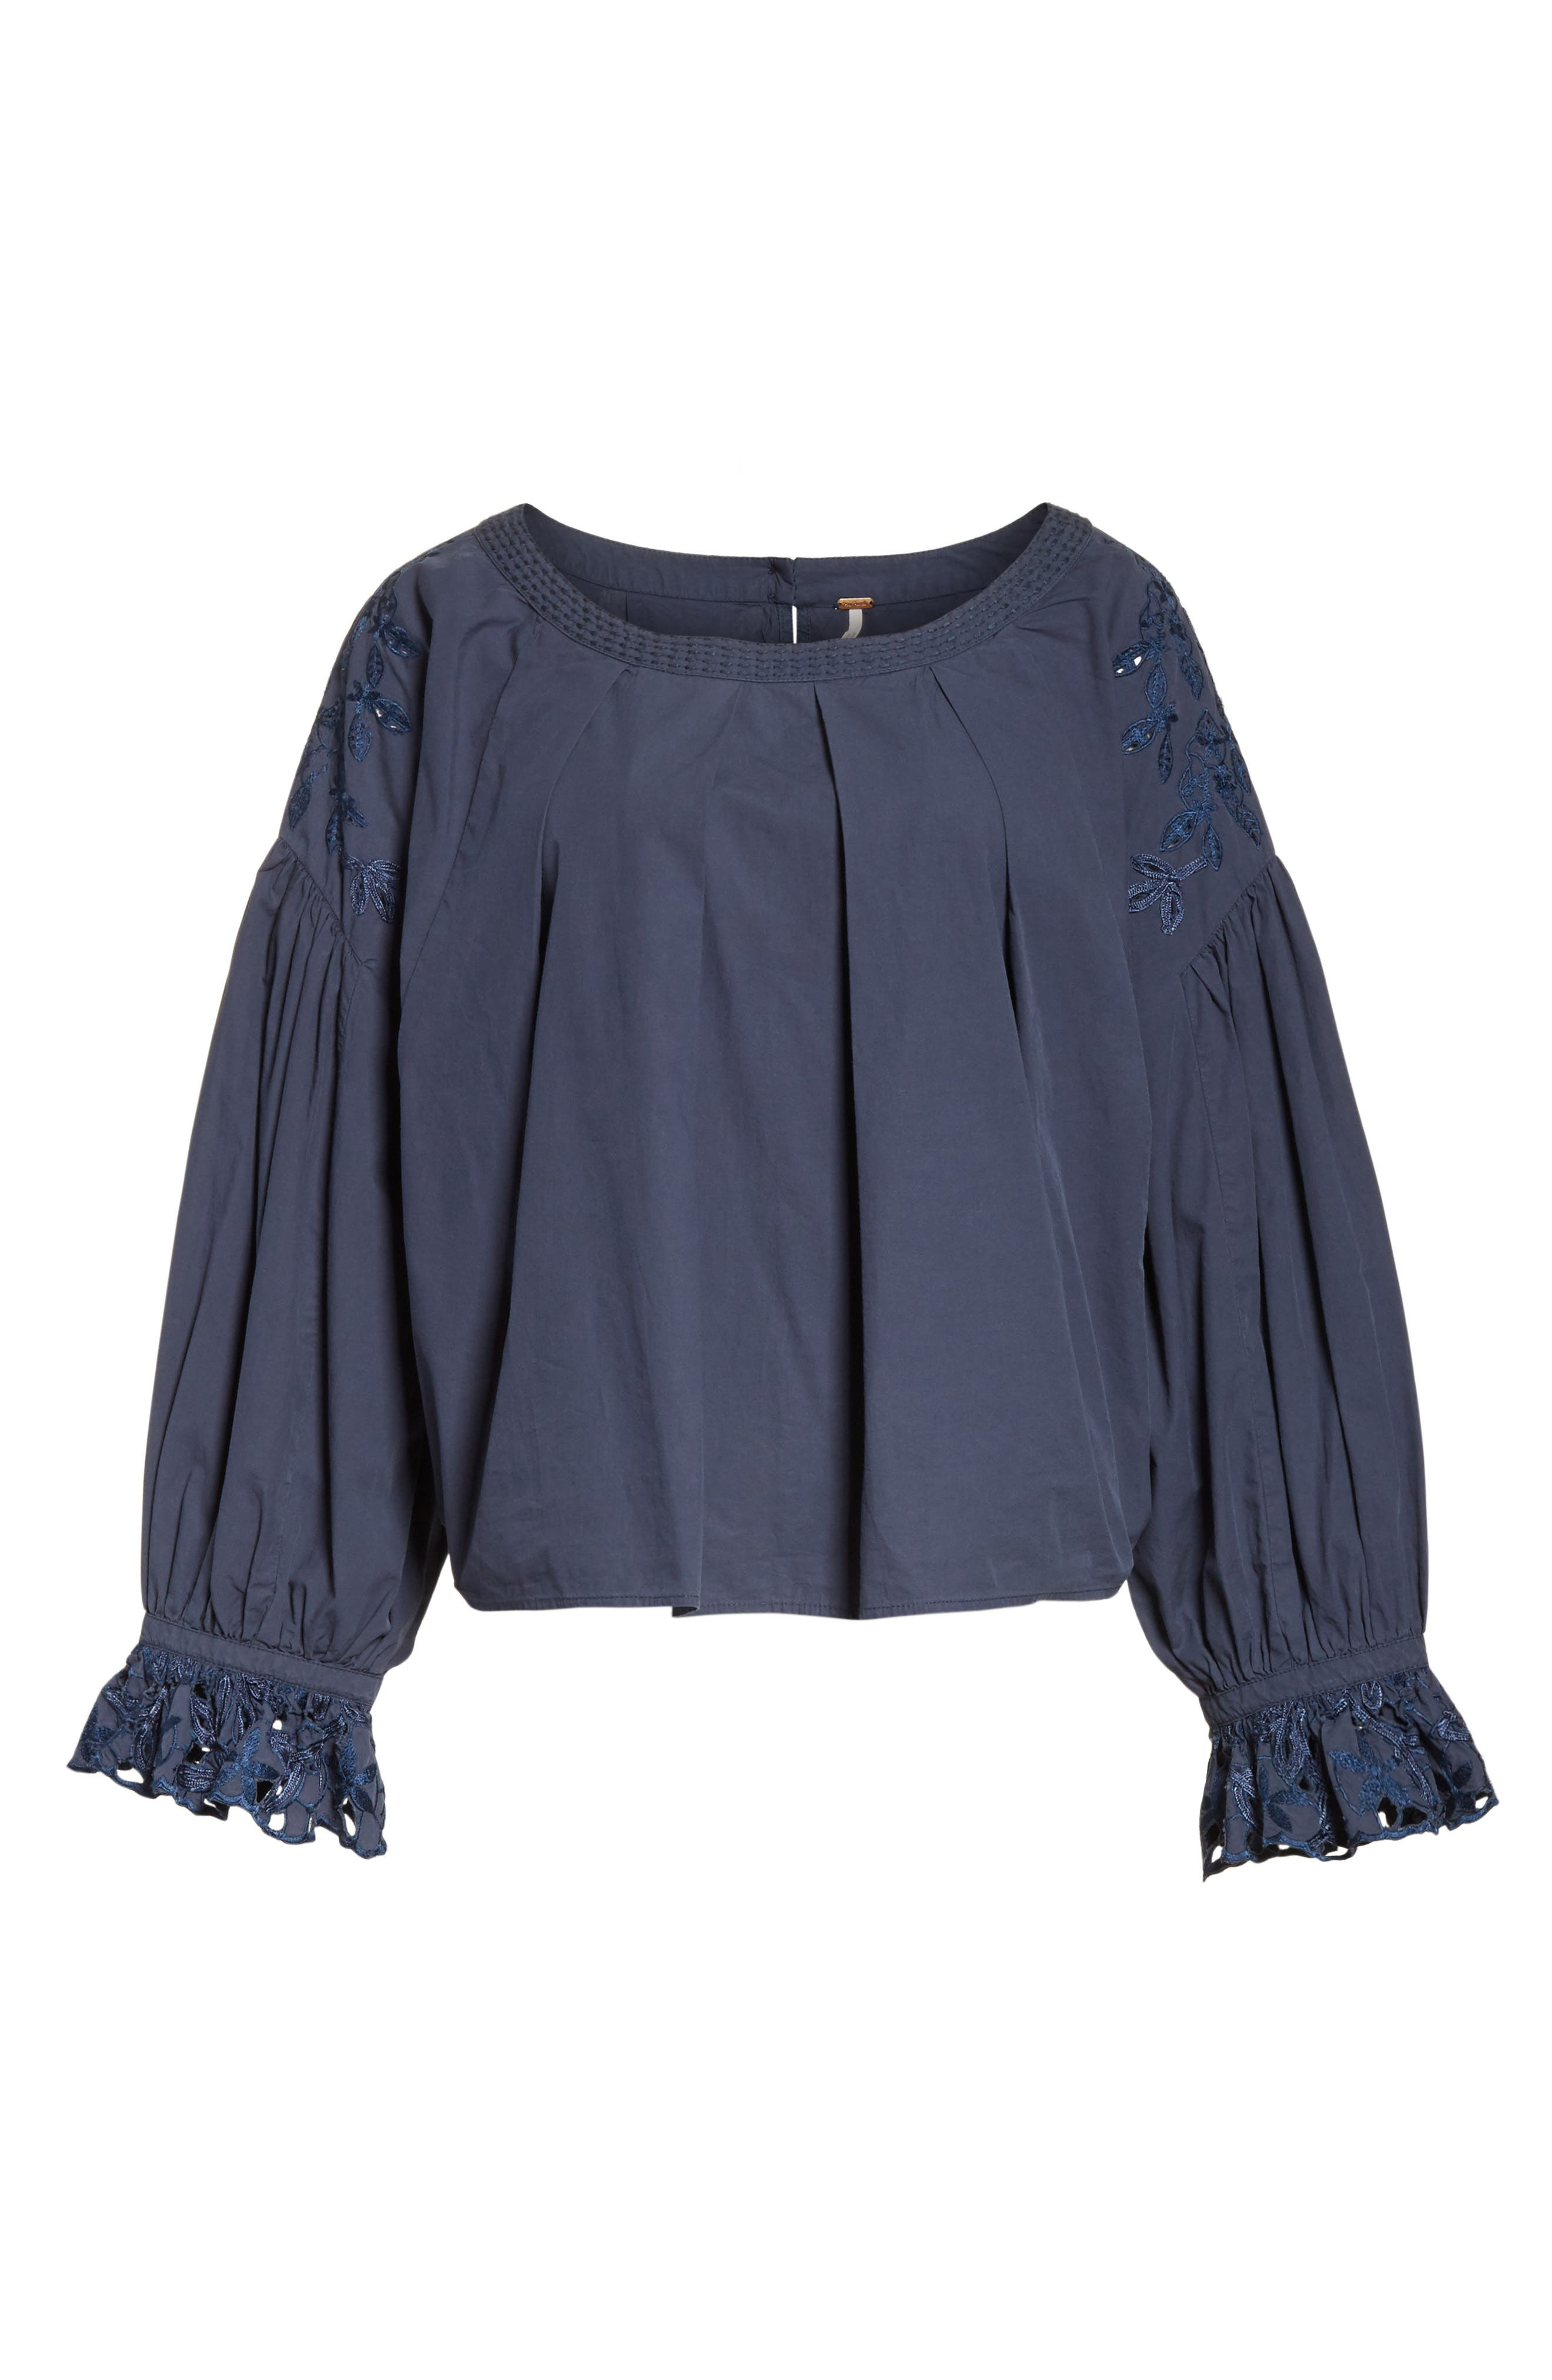 Wishing Well Blouse,                             Alternate thumbnail 6, color,                             020